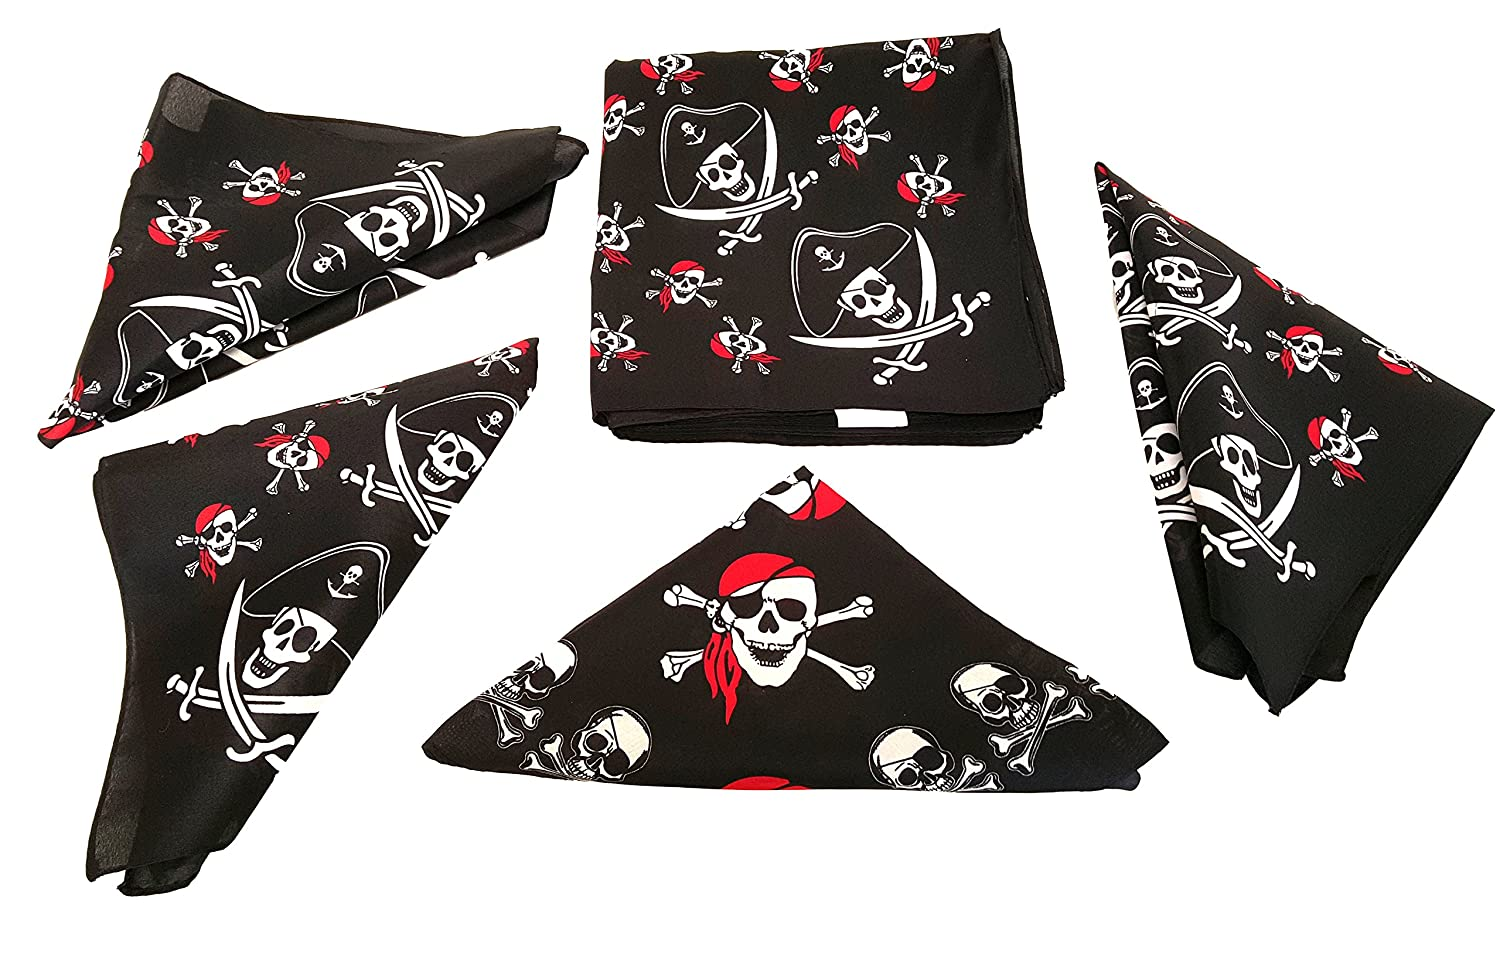 Pirate Bandana's For Children Or Adults, By Playscene (12 Pirate Bandana) by Playscene™